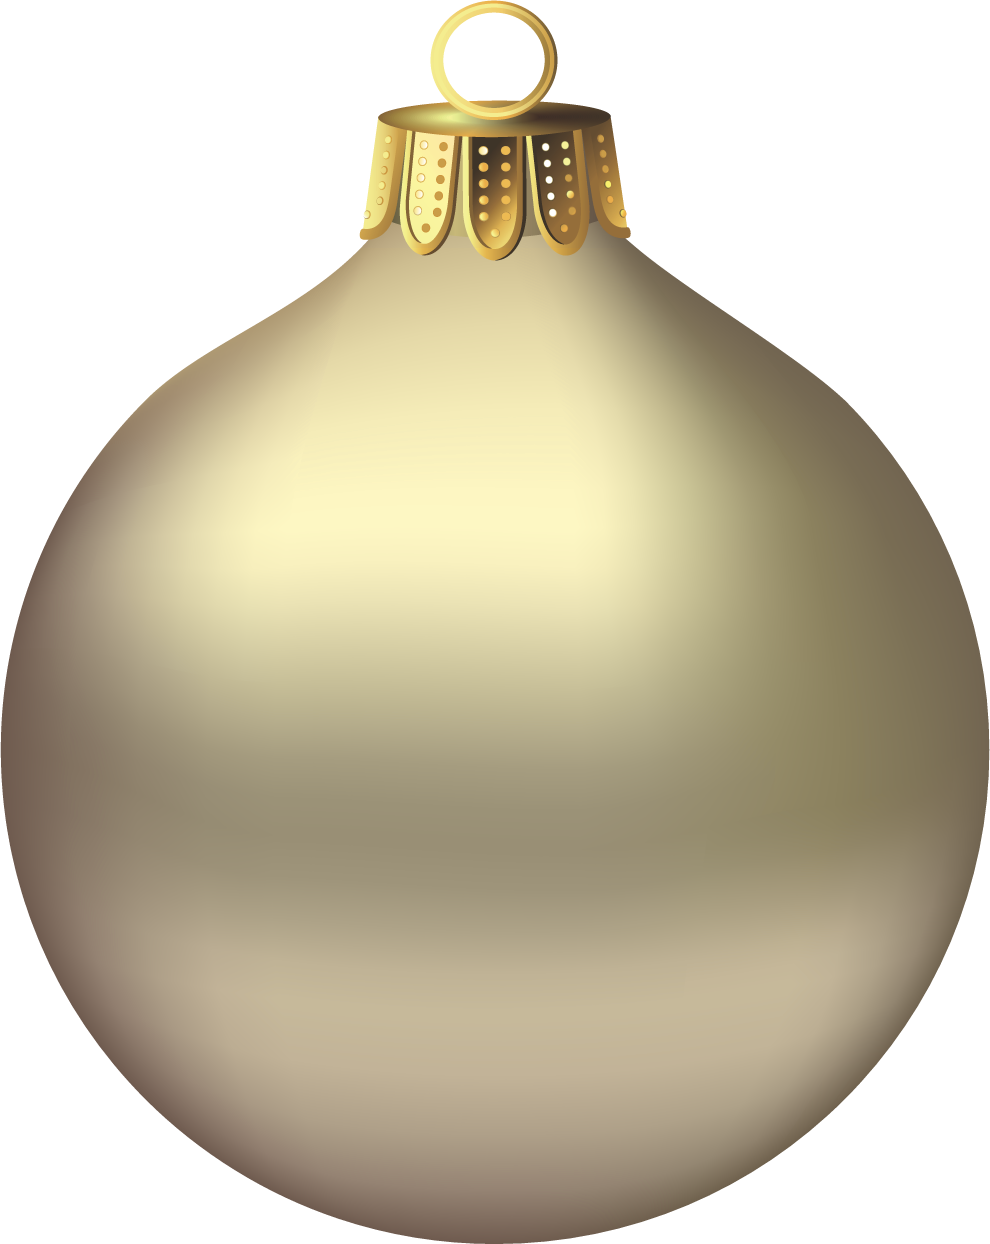 Free Gold Christmas Ornaments Png, Download Free Clip Art.